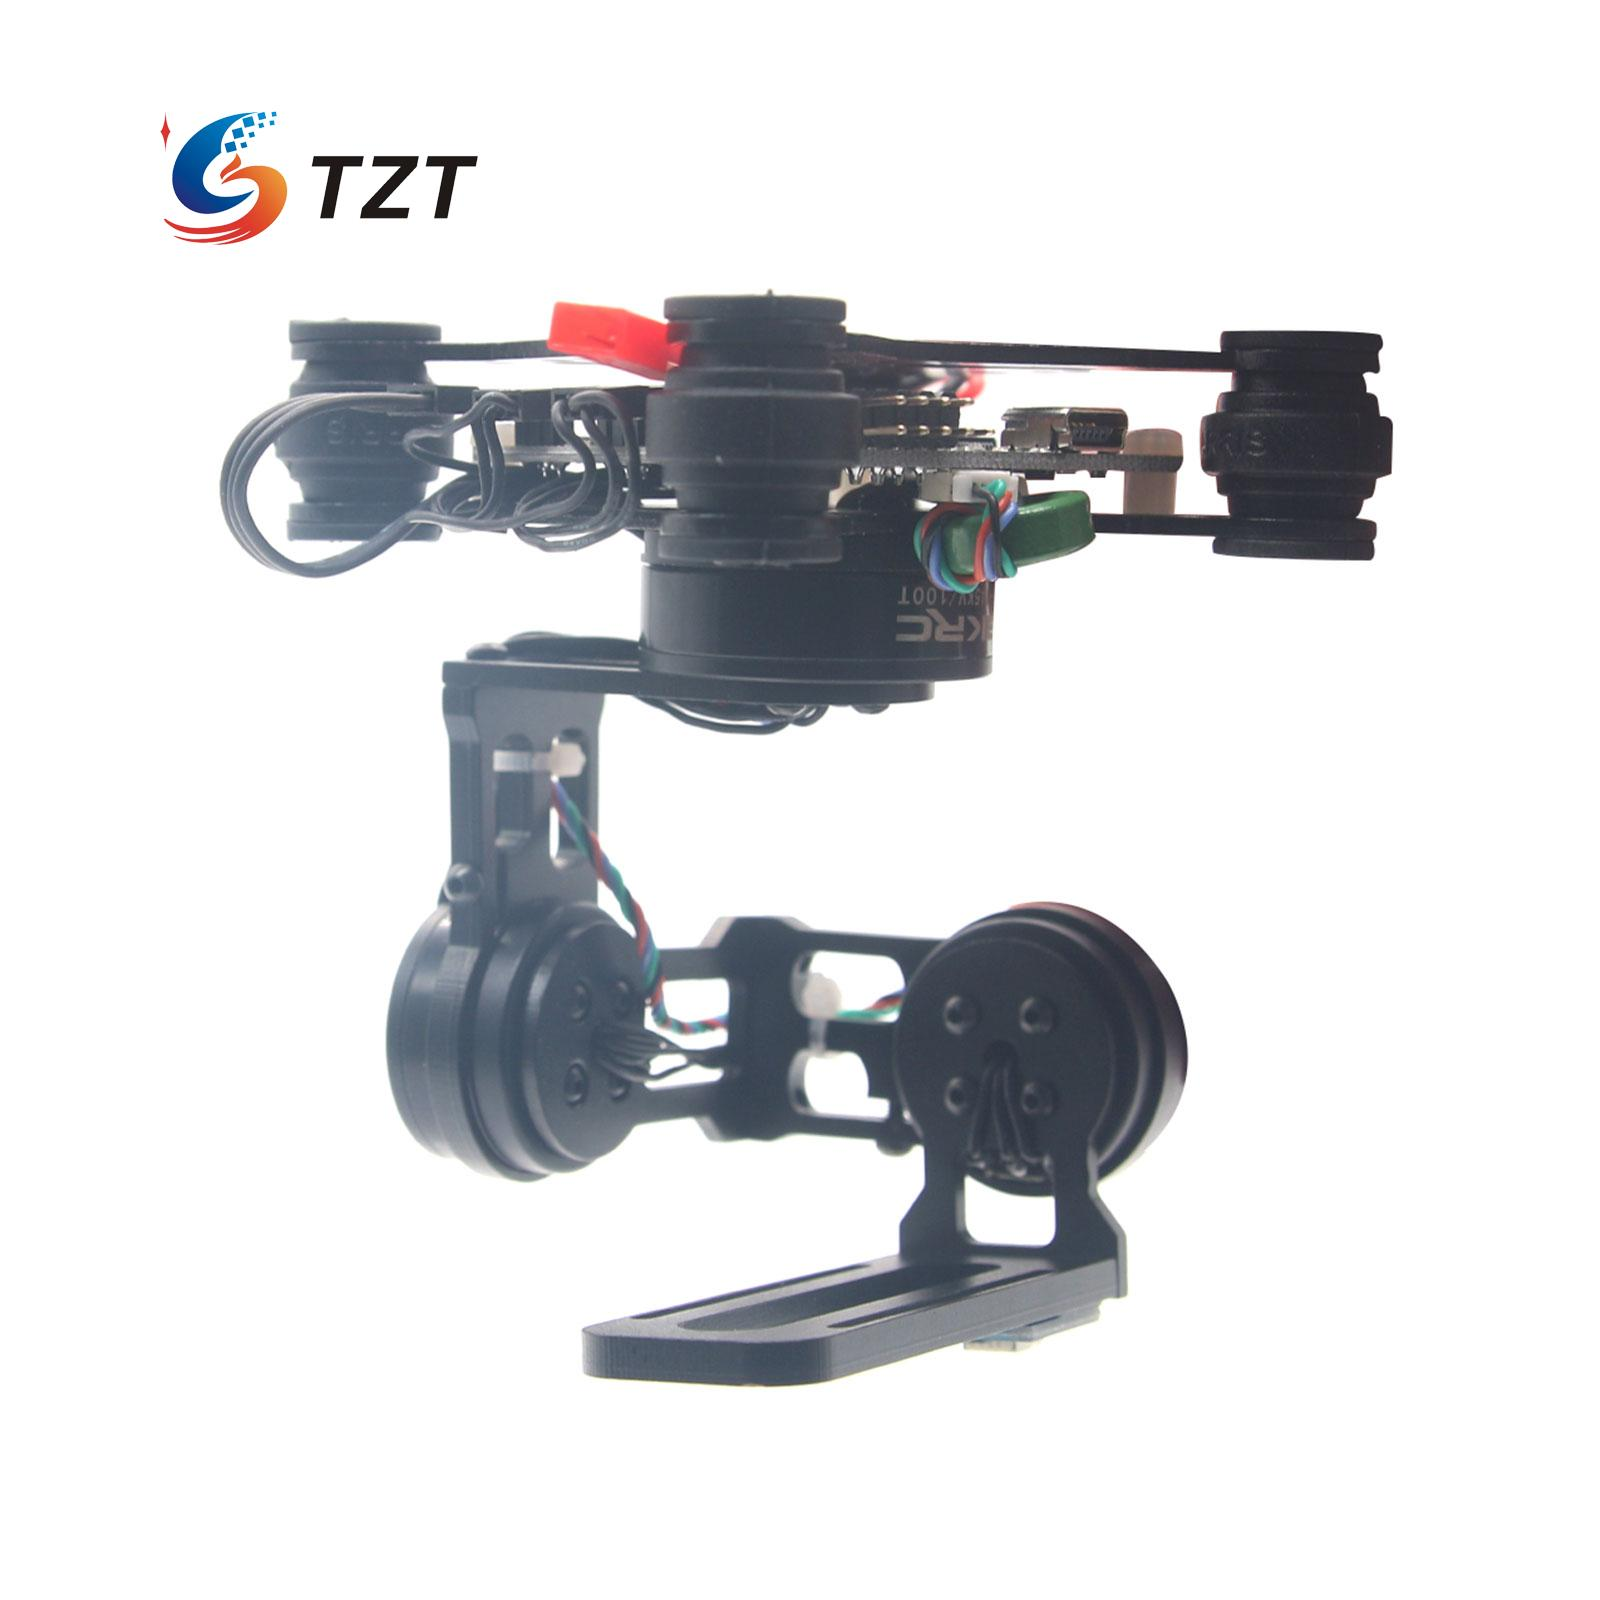 Storm32 FPV 3 Axis Brushless Gimbal Gopro Camera Stabilizer with Motors & Storm32 Controller 3k carbon fiber brushless gimbal with controller motors full plug